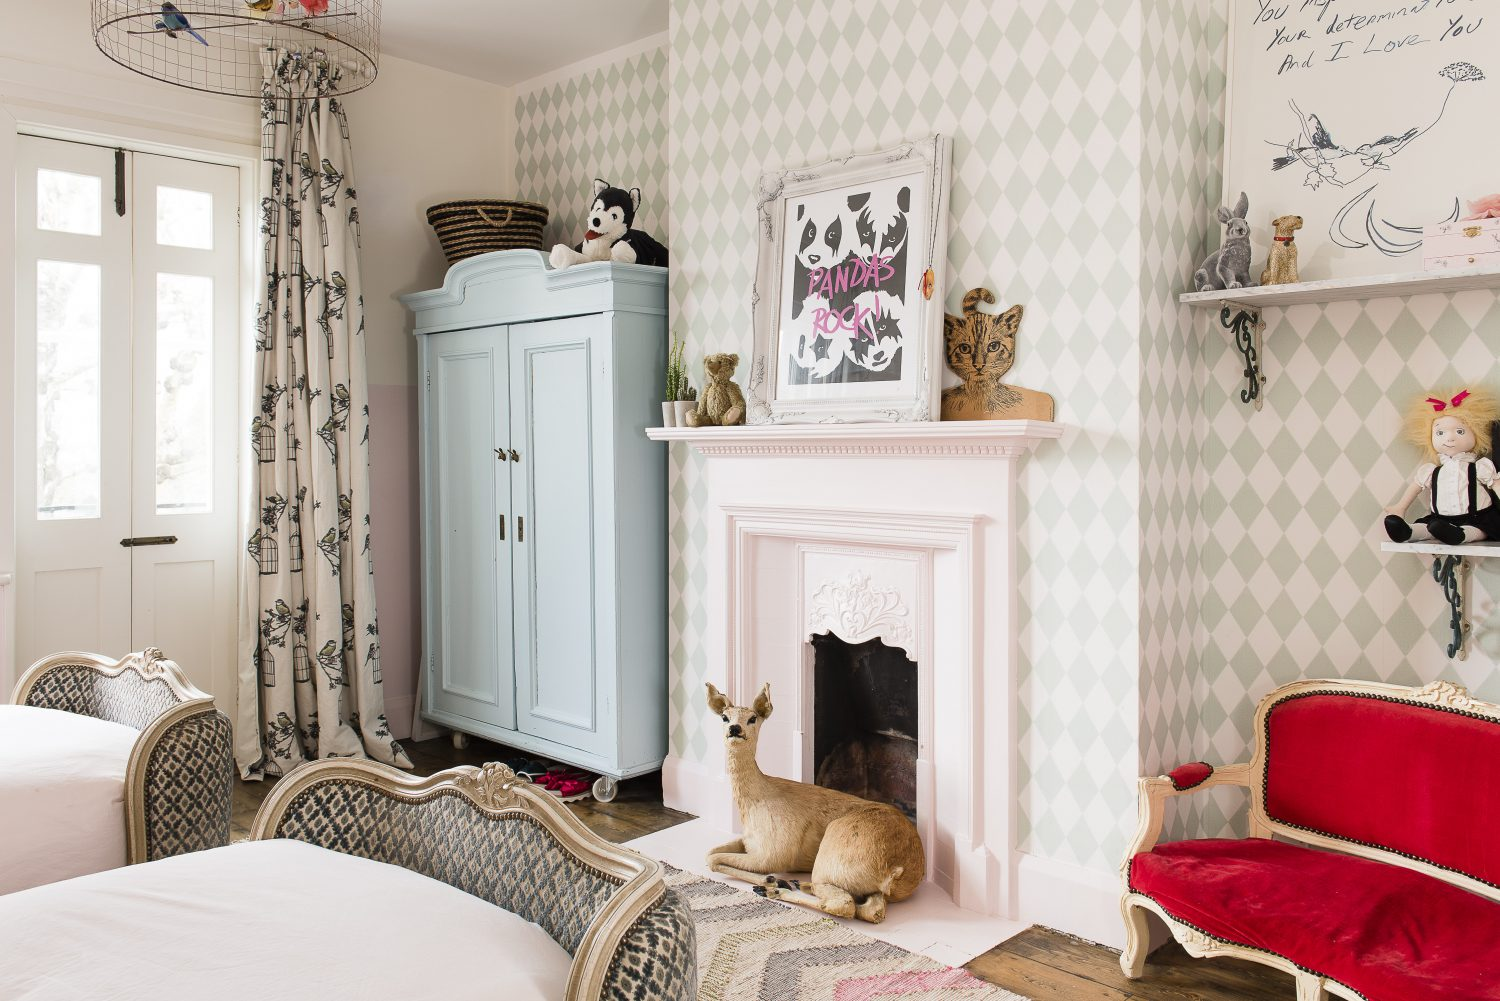 Daughter Tippi Rose's bedroom is full of animals from the feathered fake swan head to the deer which sits in front of the fireplace. Bed linen is from M&S